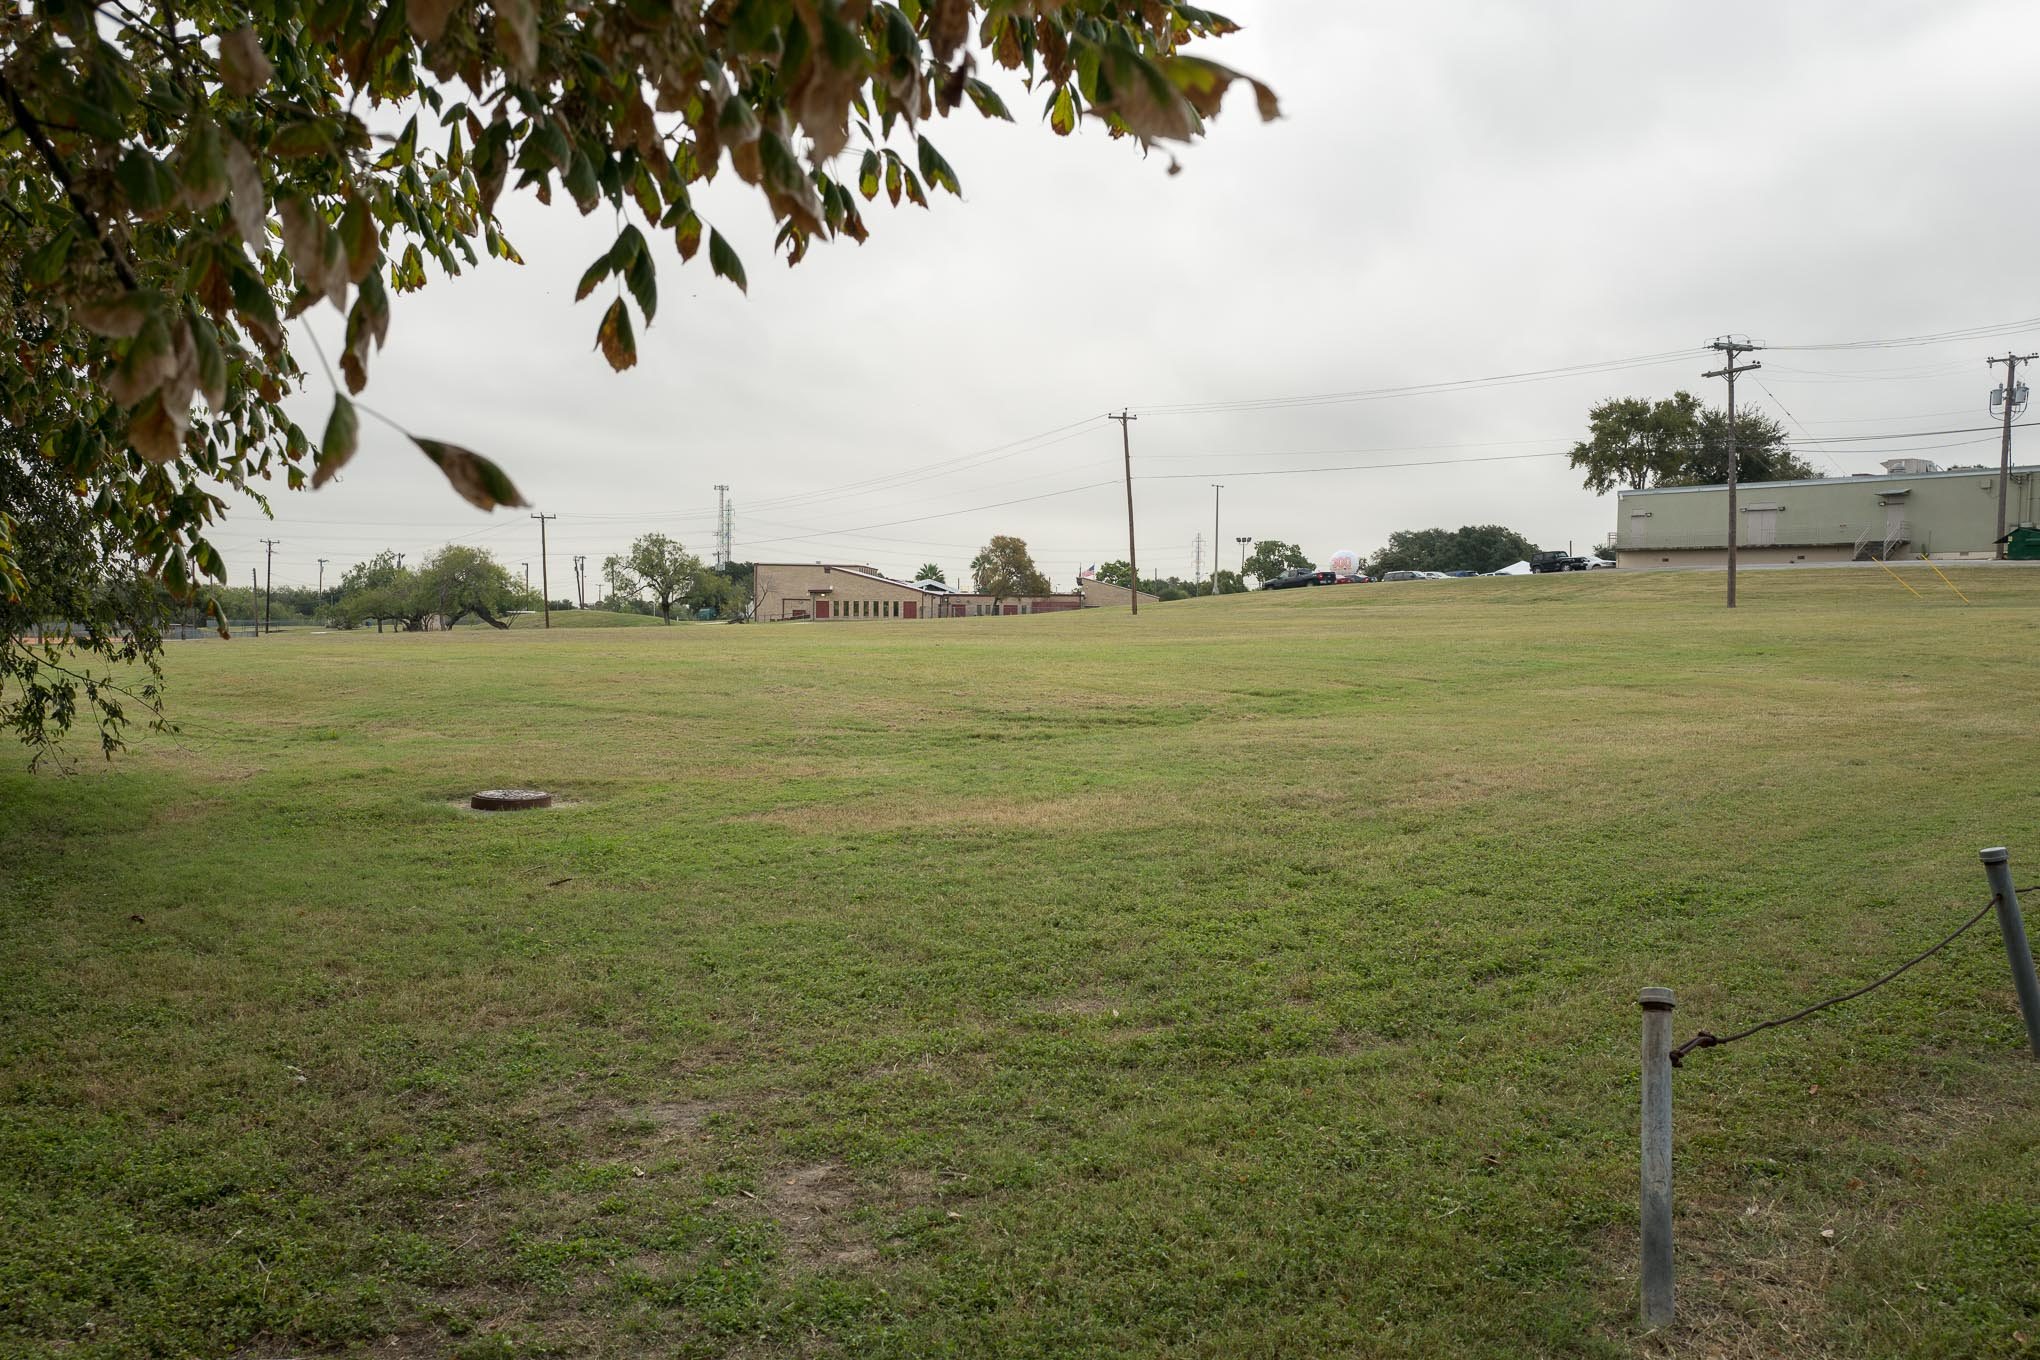 Lincoln Park currently offers plenty of open green space to the community.